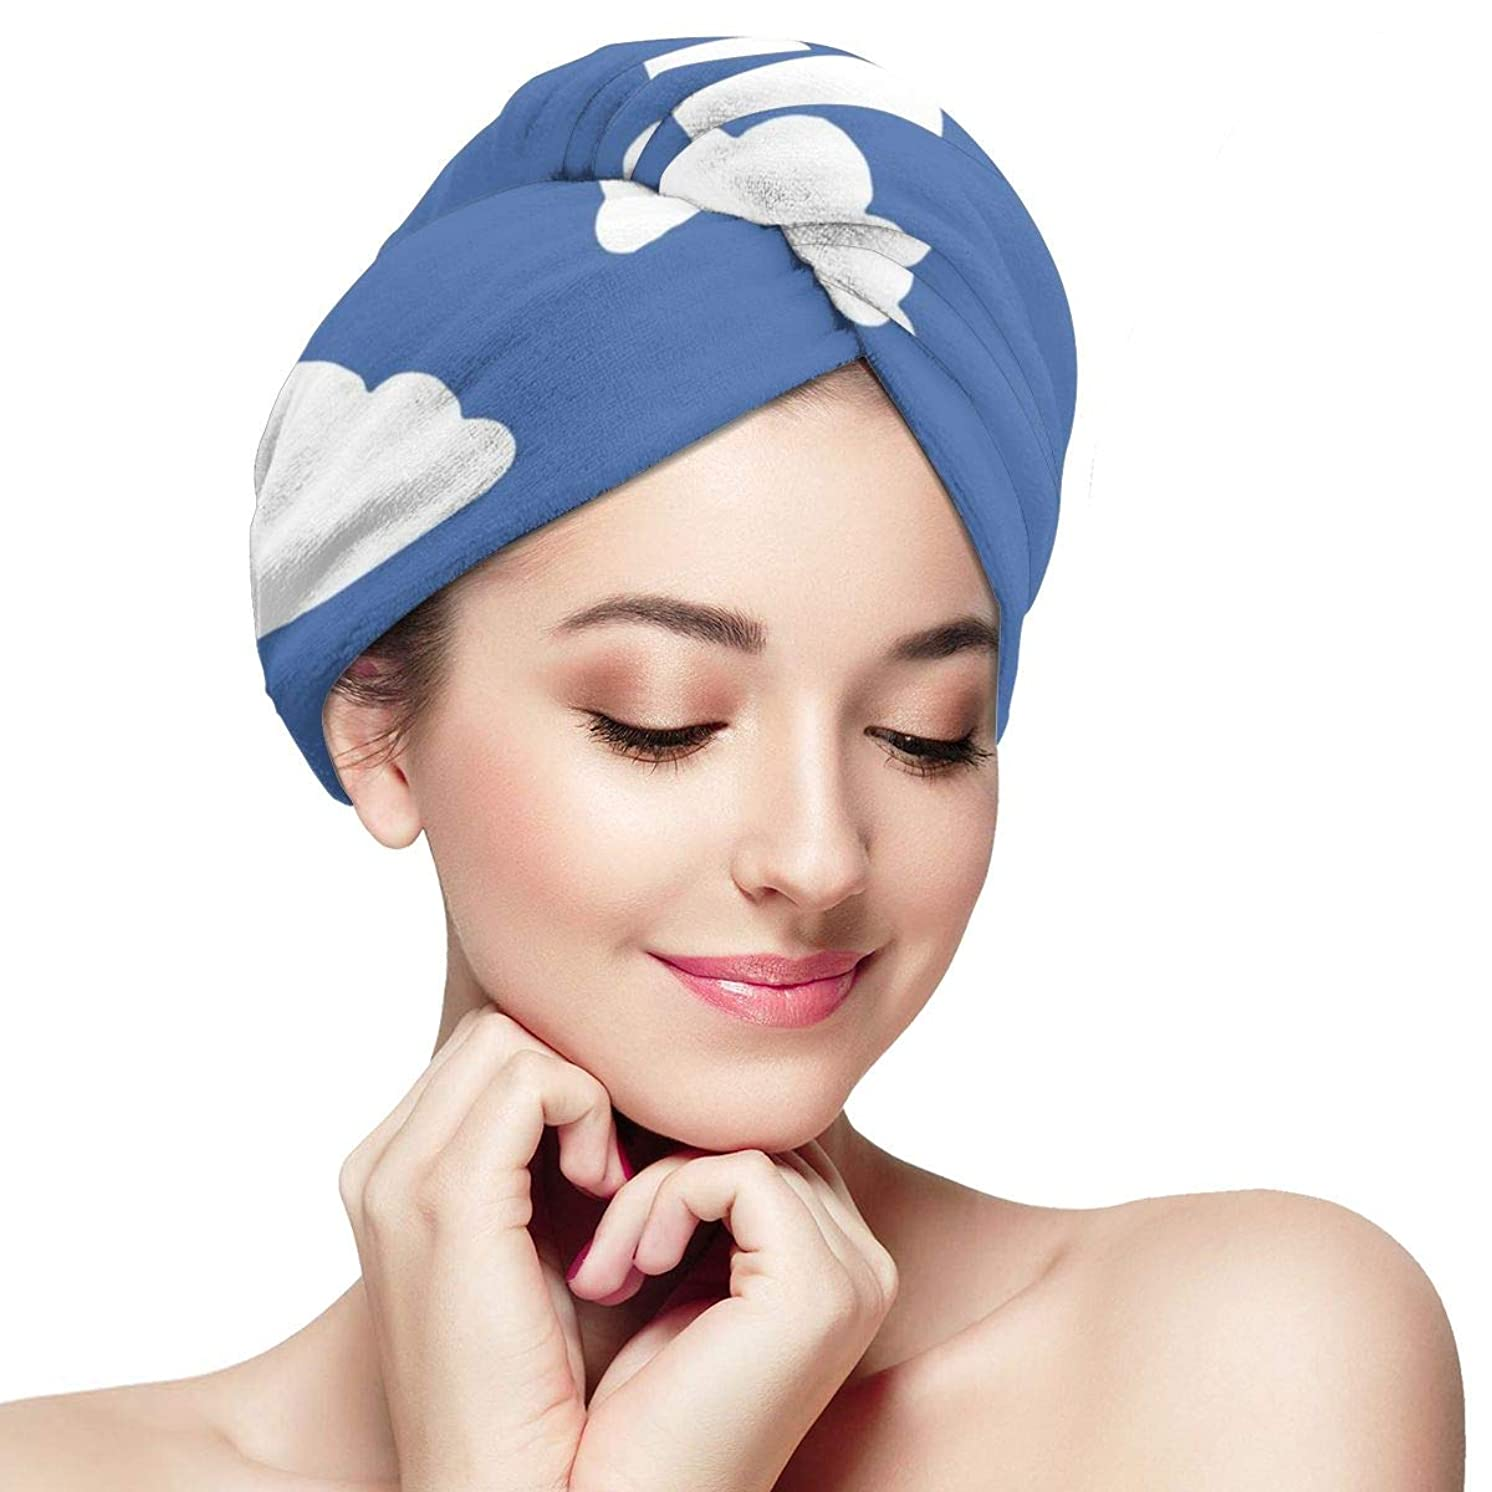 Womens Hair Drying Towel Wrap Turban With Button White Clouds Blue Sky Soft Absorbent Microfiber Bath Head Wrap Twist For Long & Curly Hair